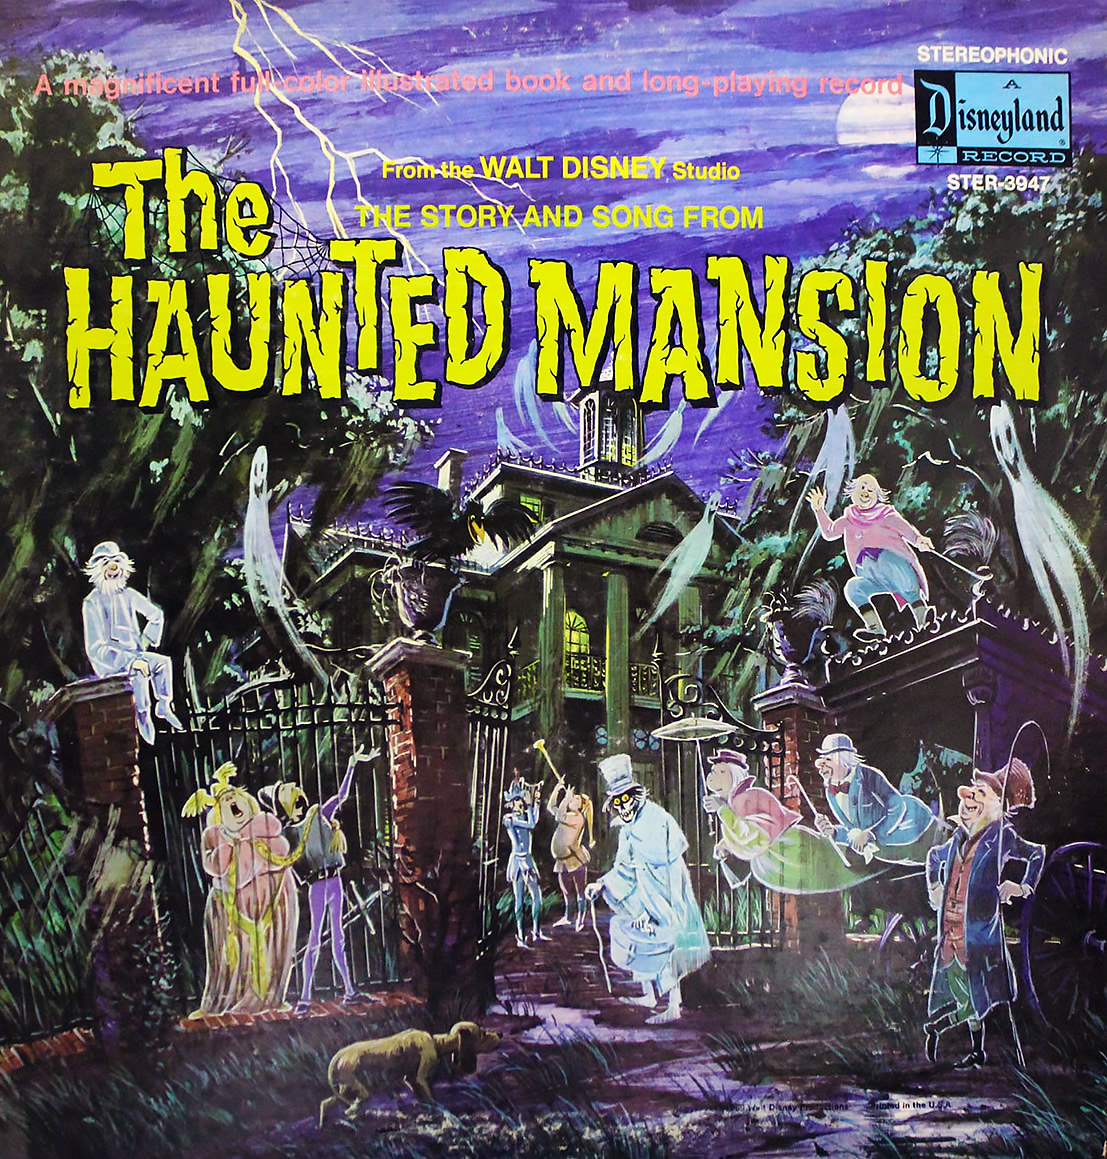 Disneyland Records 1969 release of The Haunted Mansion